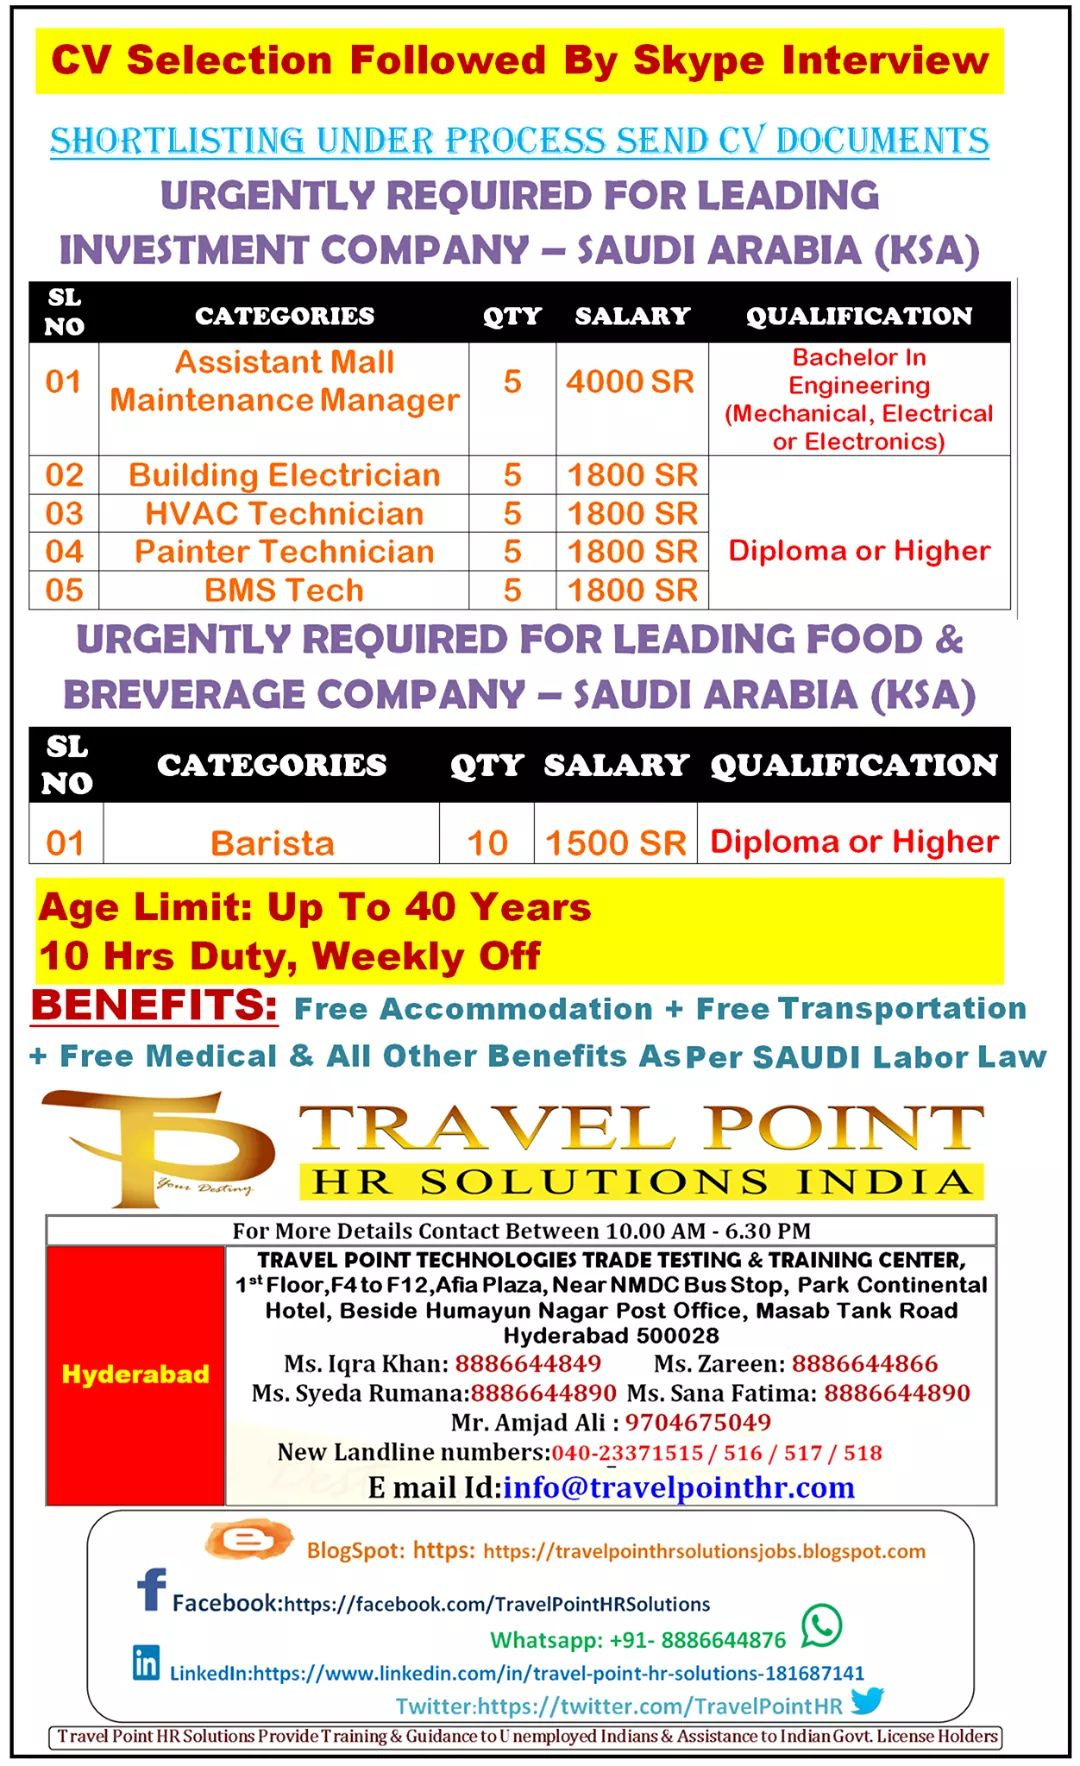 JOB OPENINGS IN A LEADING INVESTMENT COMPANY  IN SAUDI ARABIA